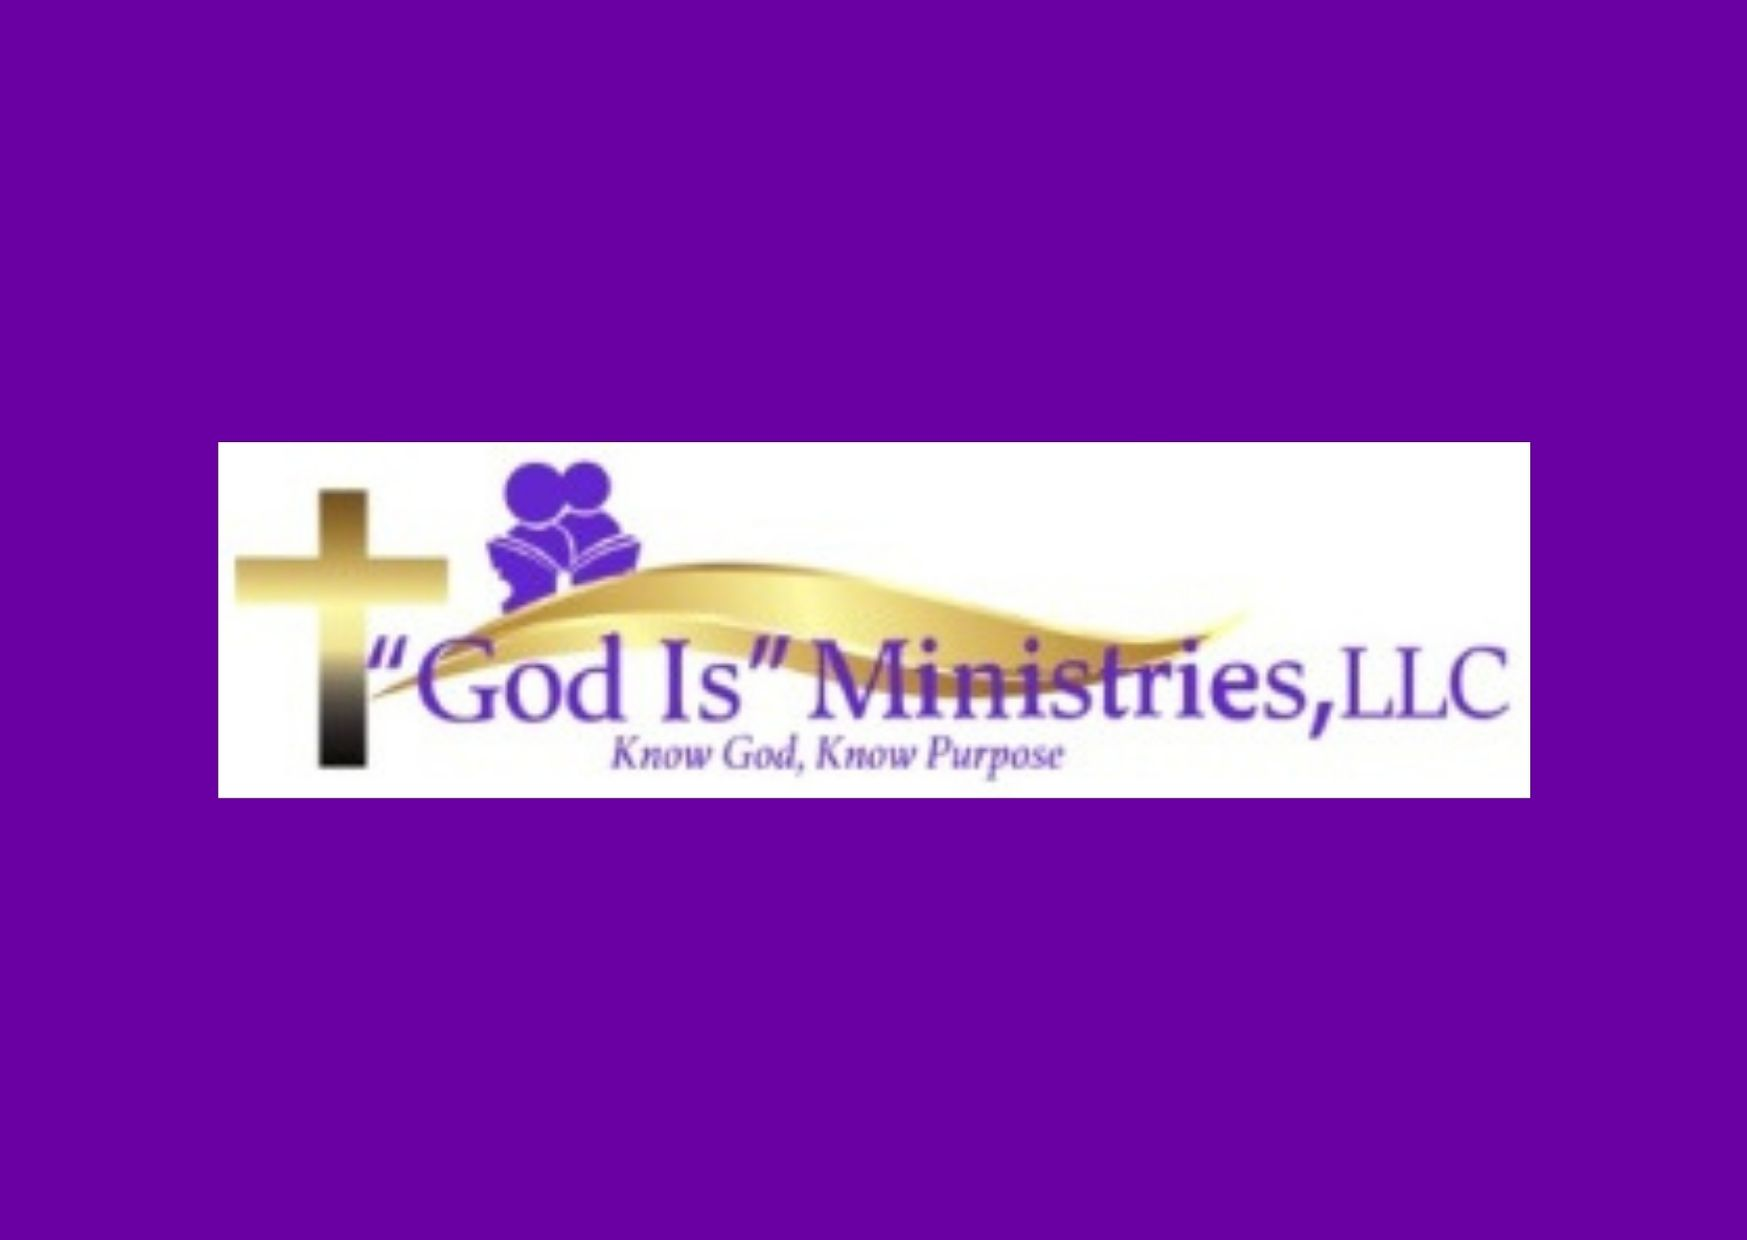 God Is Ministries, LLC